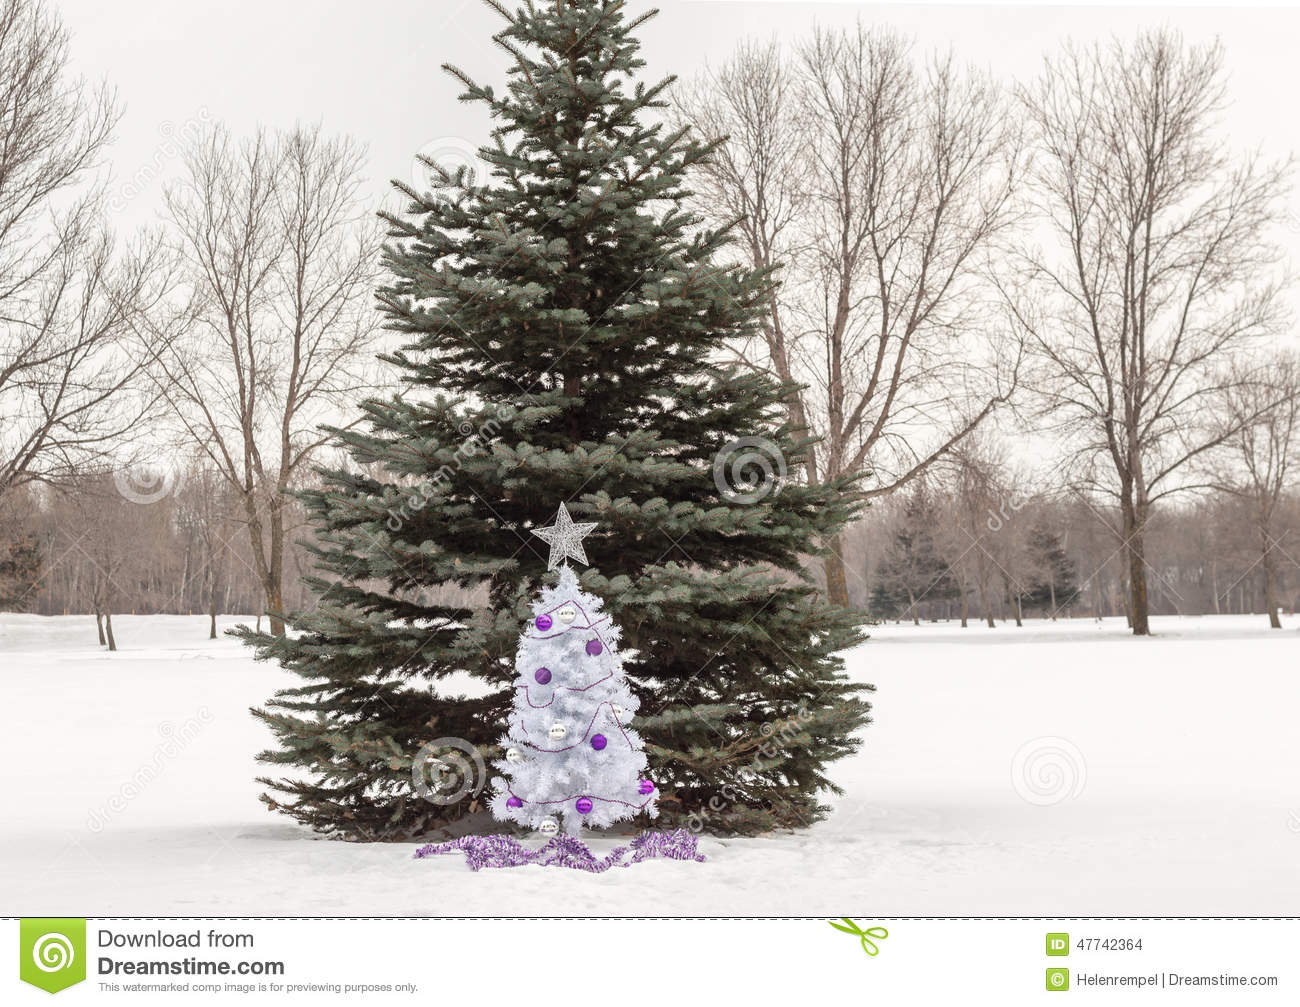 Christmas tree decorations purple and silver - Small White Christmas Tree With Purple And Silver Decorations Standing In Snow Stock Photo